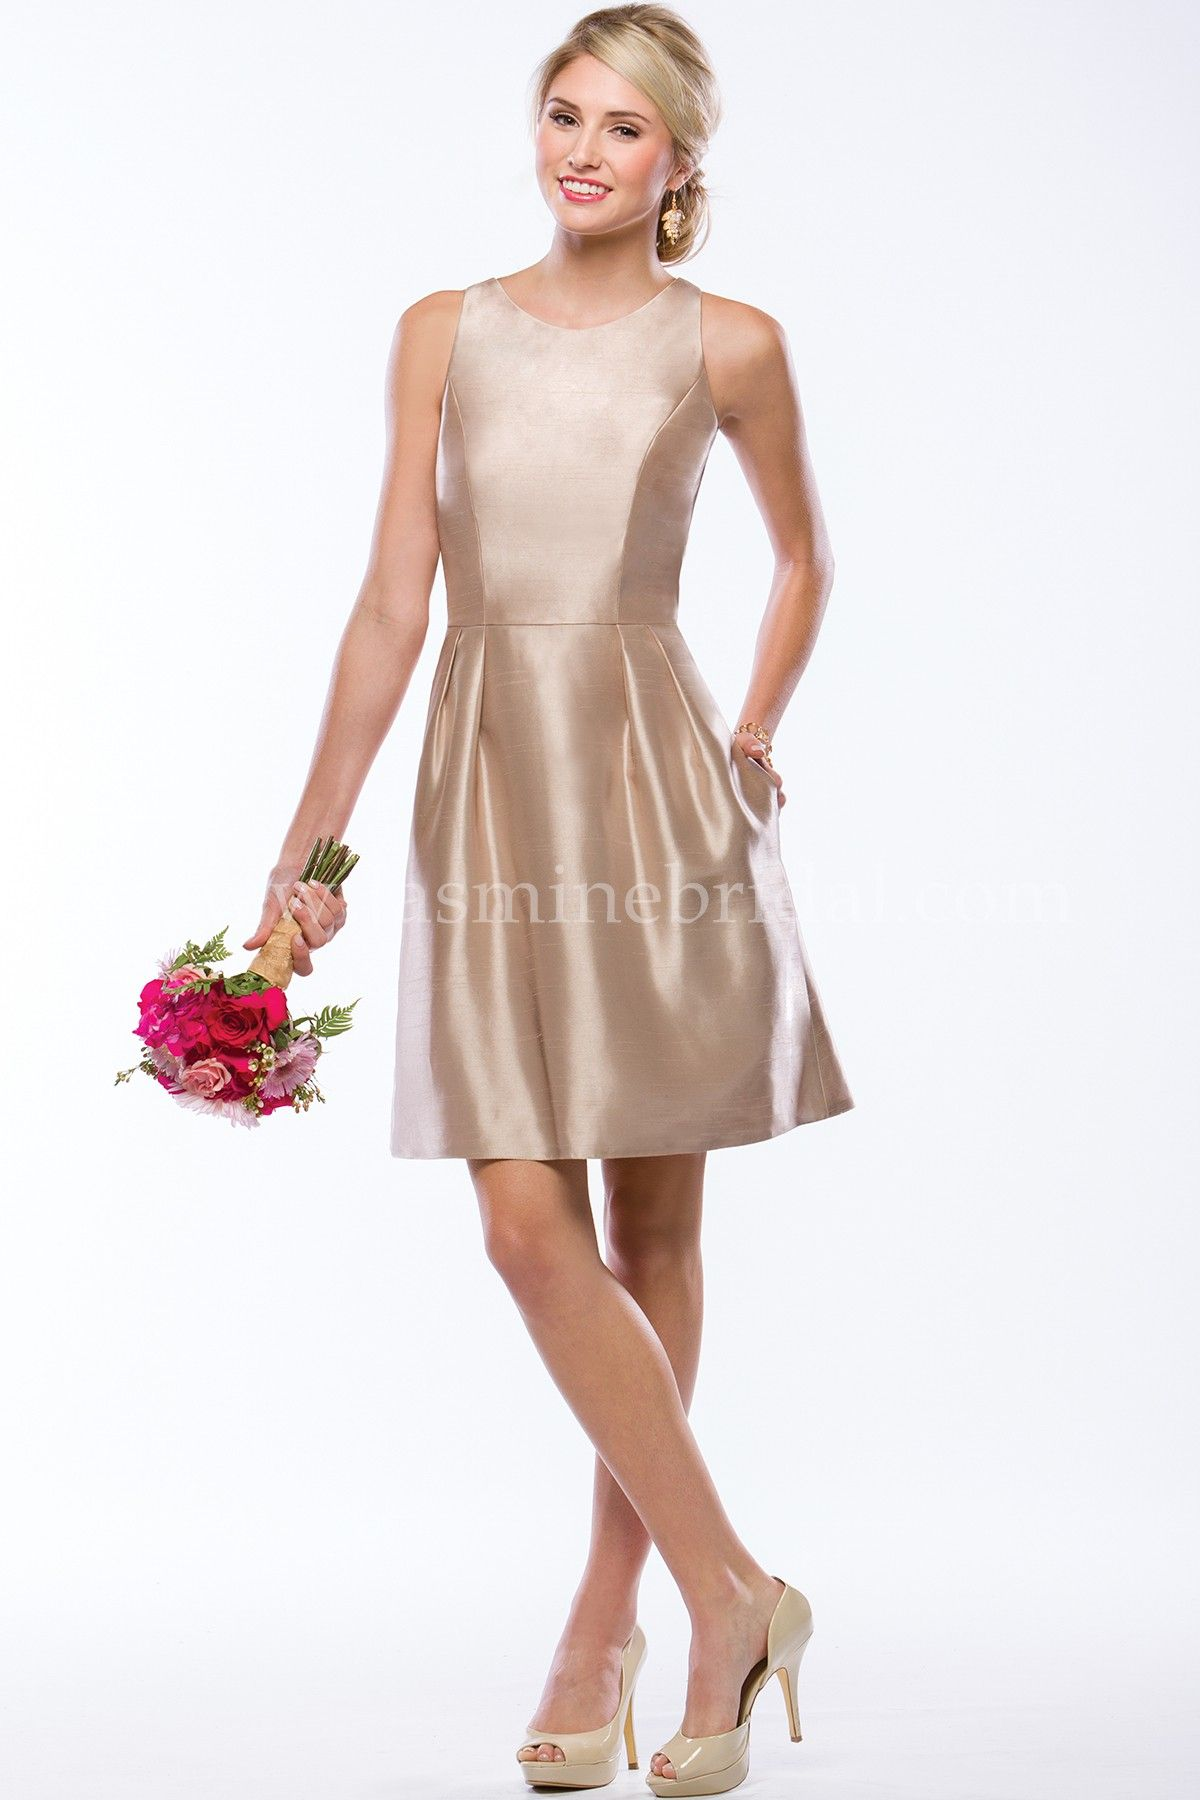 Jasmine bridal bridesmaid dress jasmine bridesmaids style p176059k jasmine bridal bridesmaid dress jasmine bridesmaids style p176059k in latte a versatile bridesmaid dress ombrellifo Images